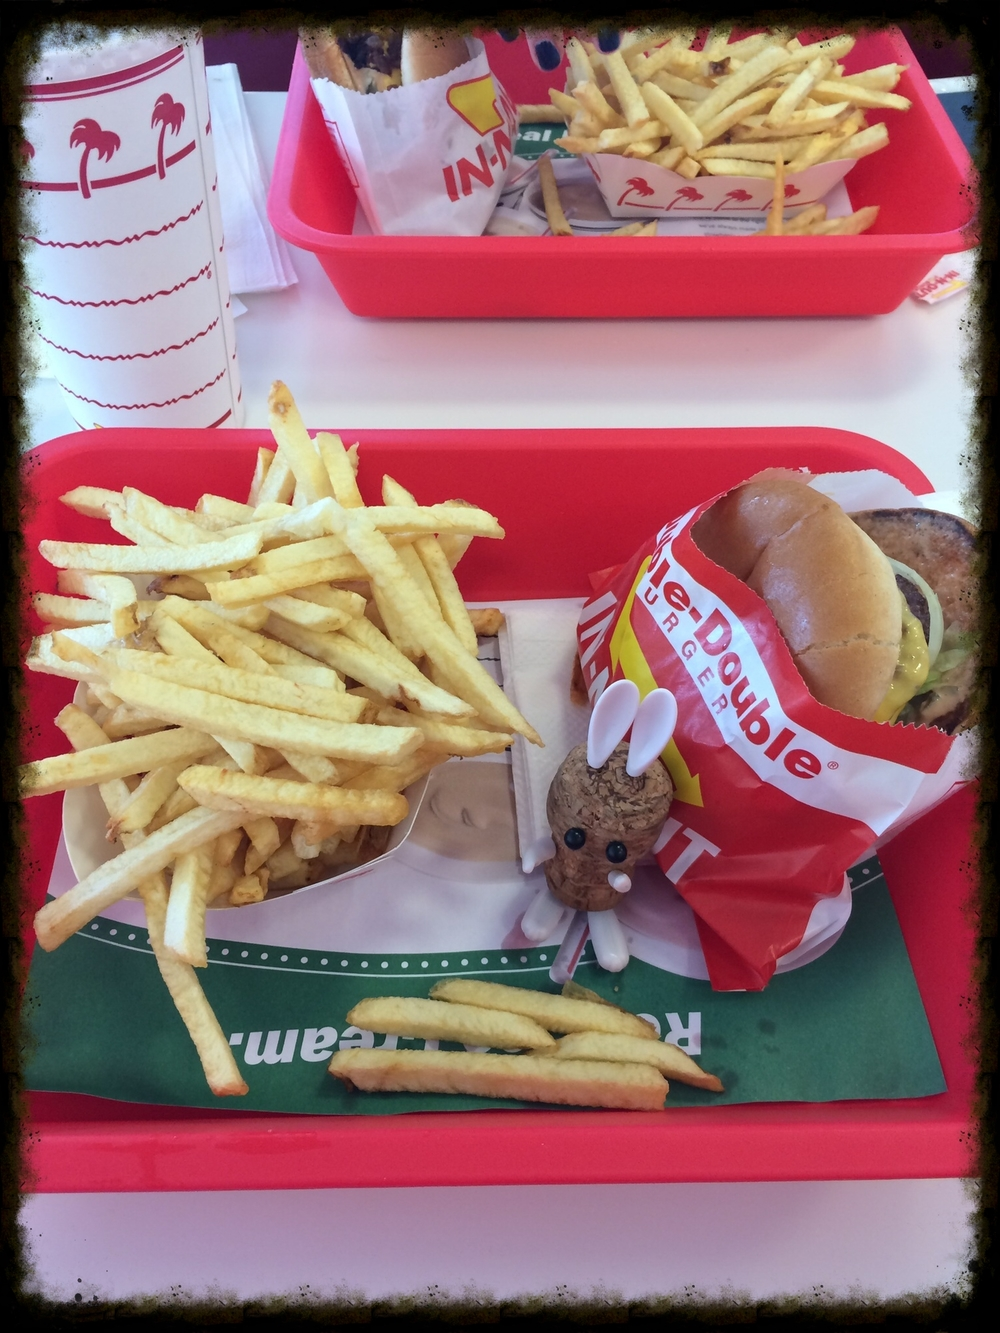 In & Out, Double Double. Clearly.